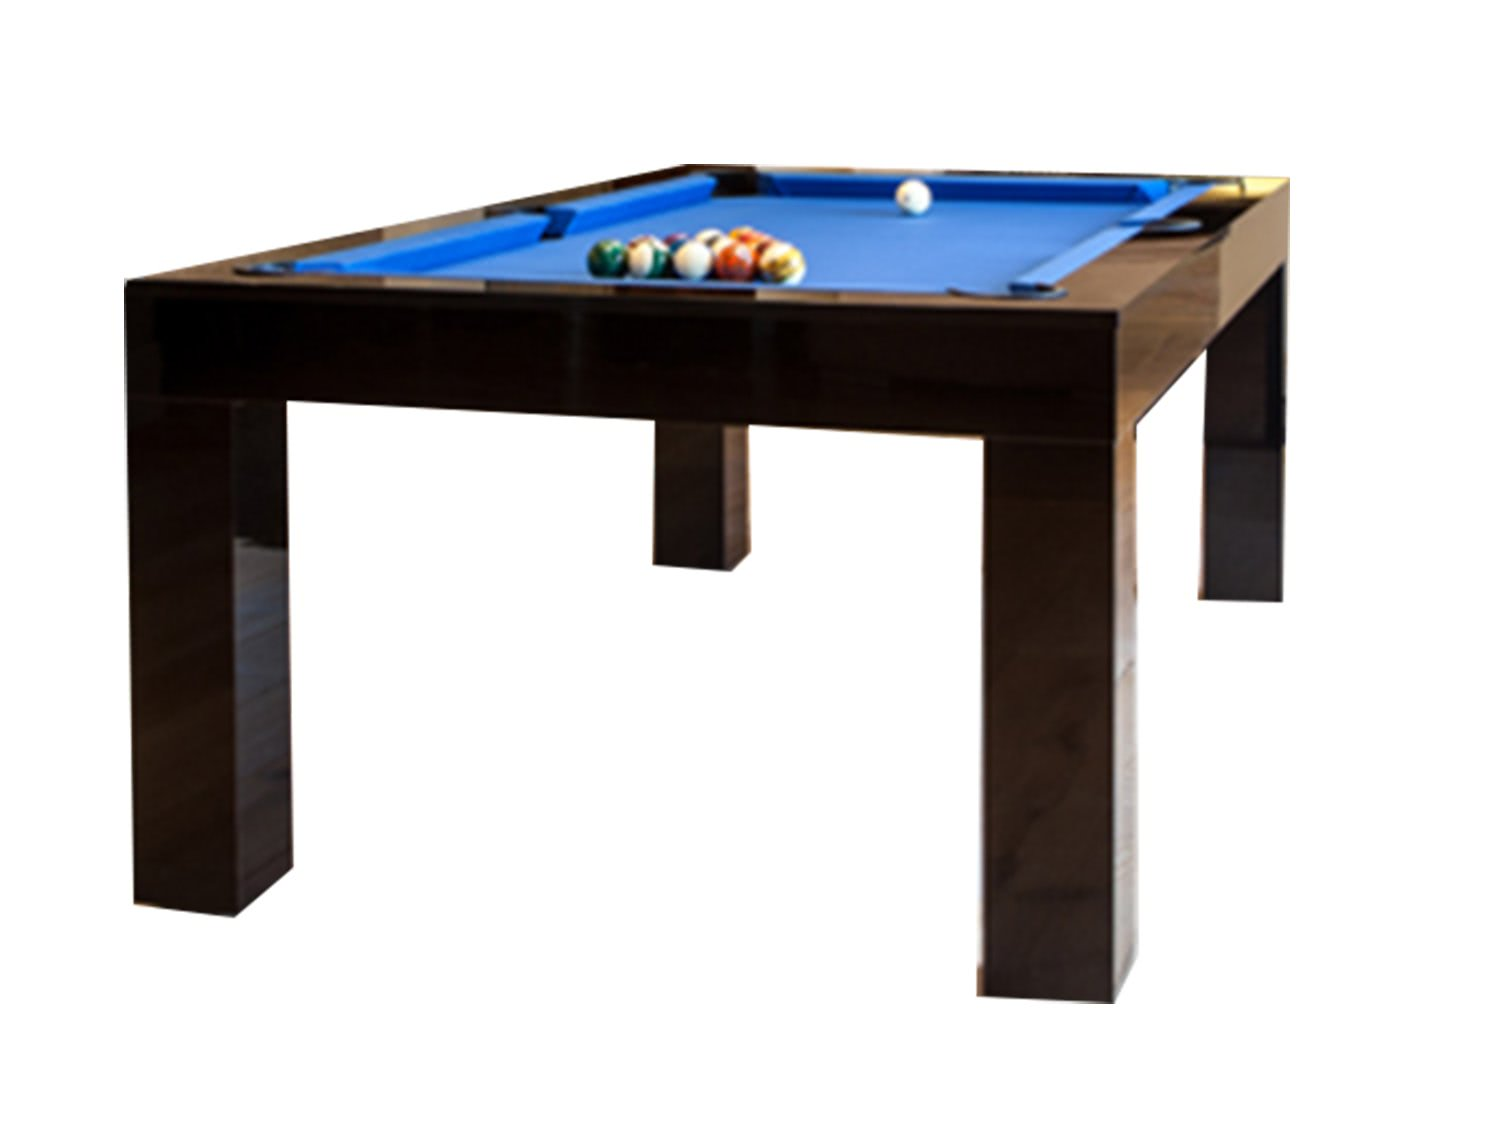 Duo milano piano black pool dining table liberty games Pool dining table